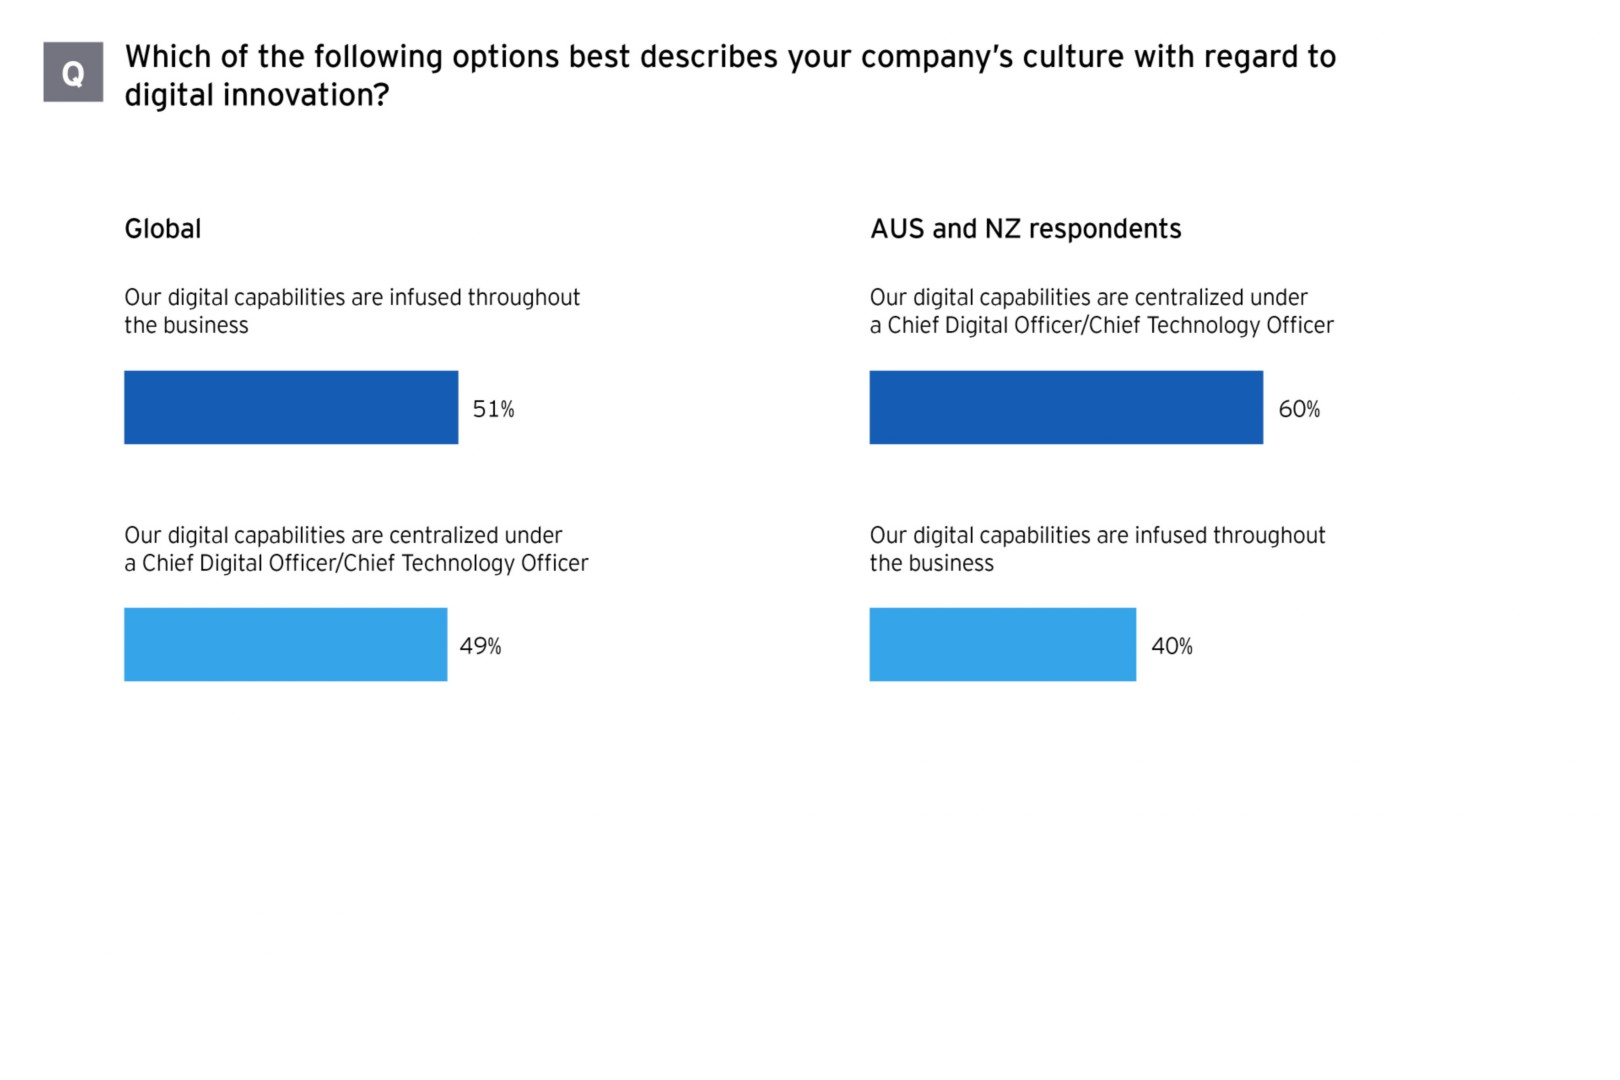 M&A survey Australasia company culture for digital innovation graph